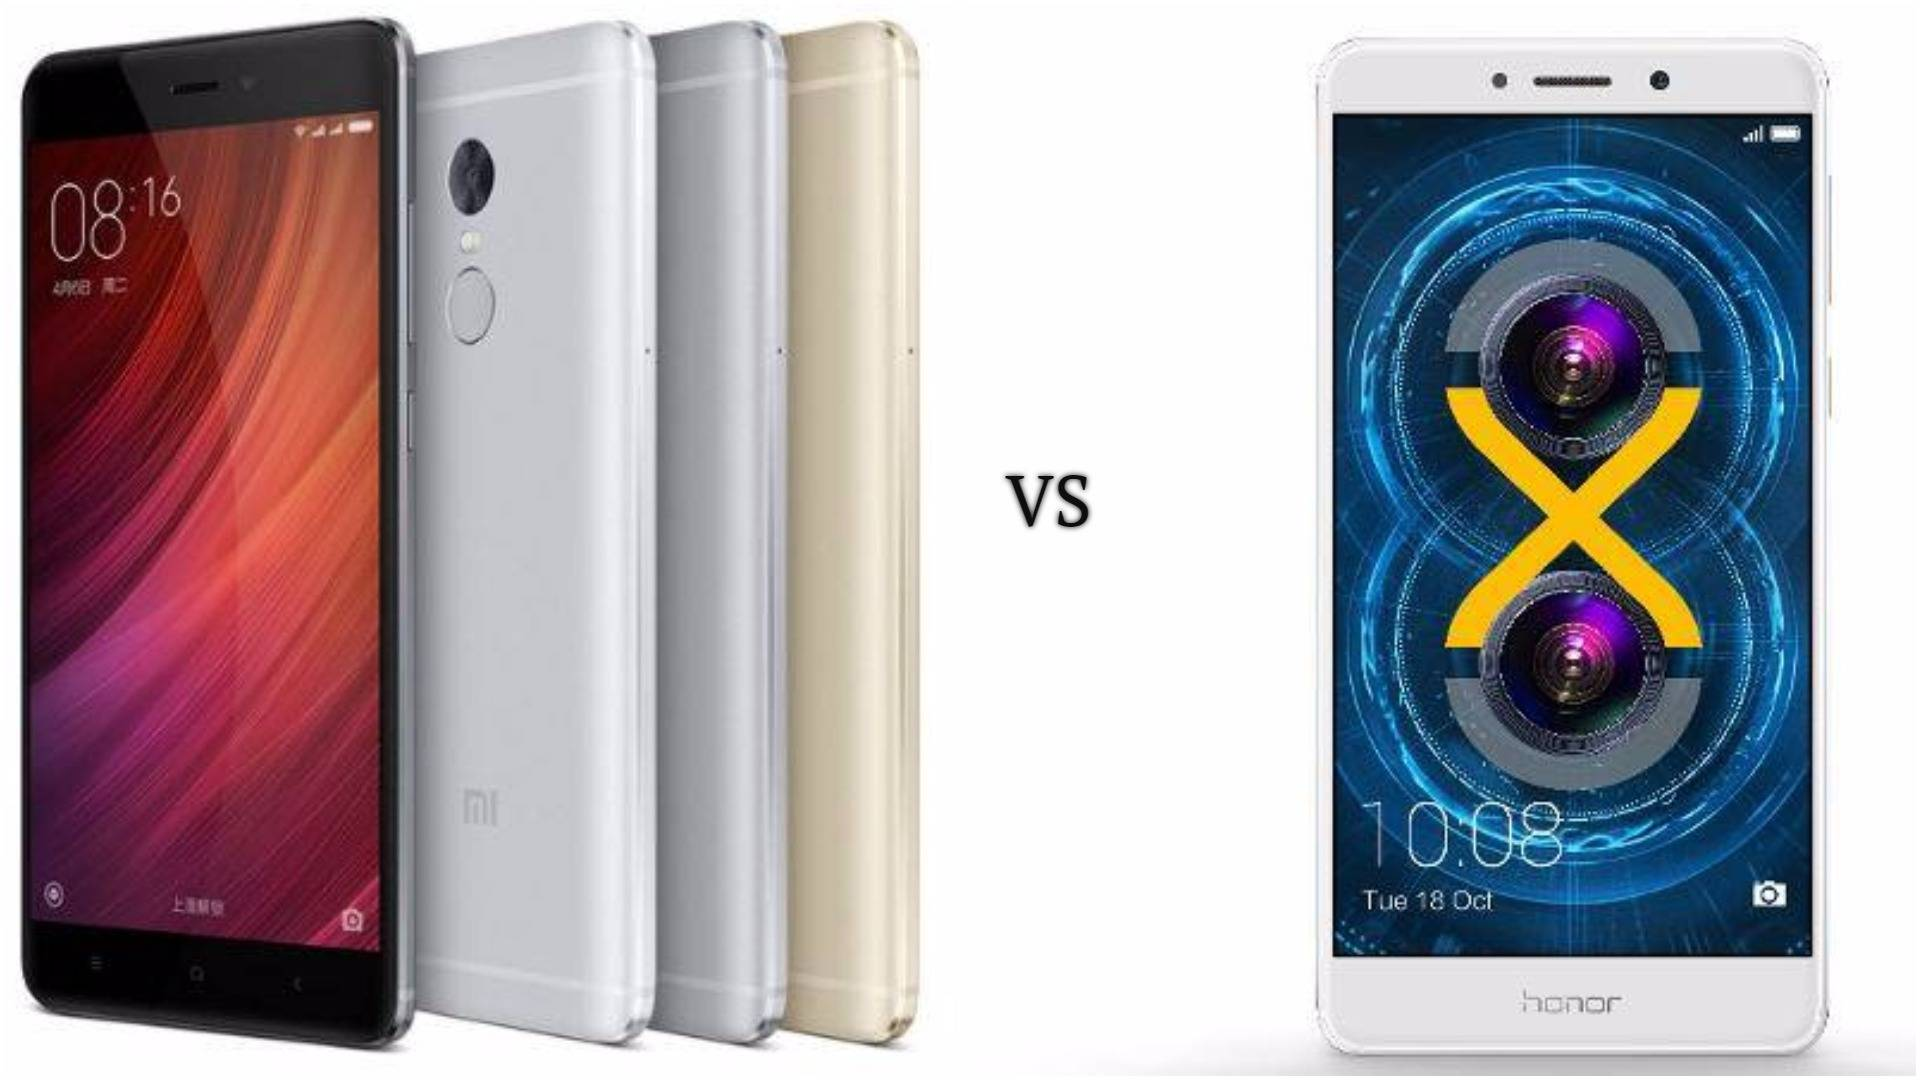 Honor 6x Vs Xiaomi Redmi Note 4 Which One To Buy At Rs 12999 4x 64 Techradar